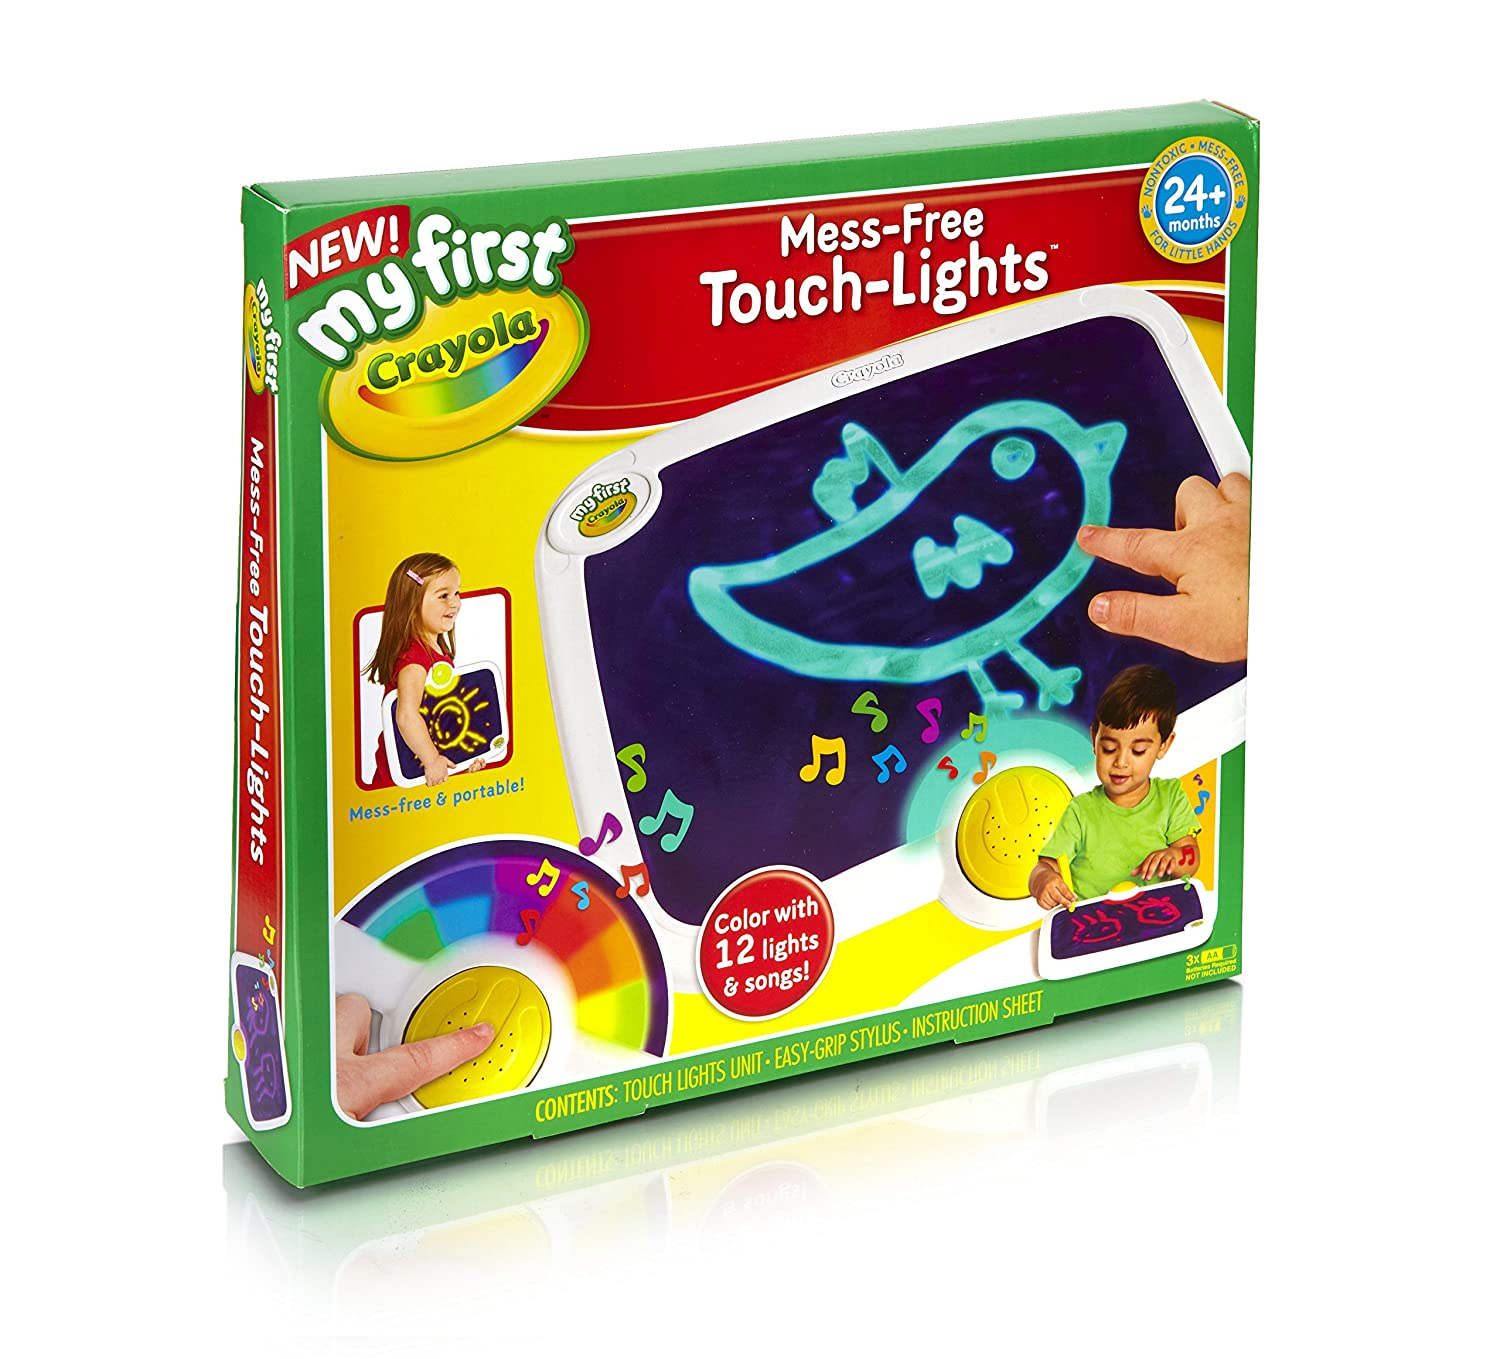 My First Crayola Mess-Free Touch Lights, Ages 2 to 4, Art Activity Station, Colorful Lights & Music, great for Home & On-the-Go